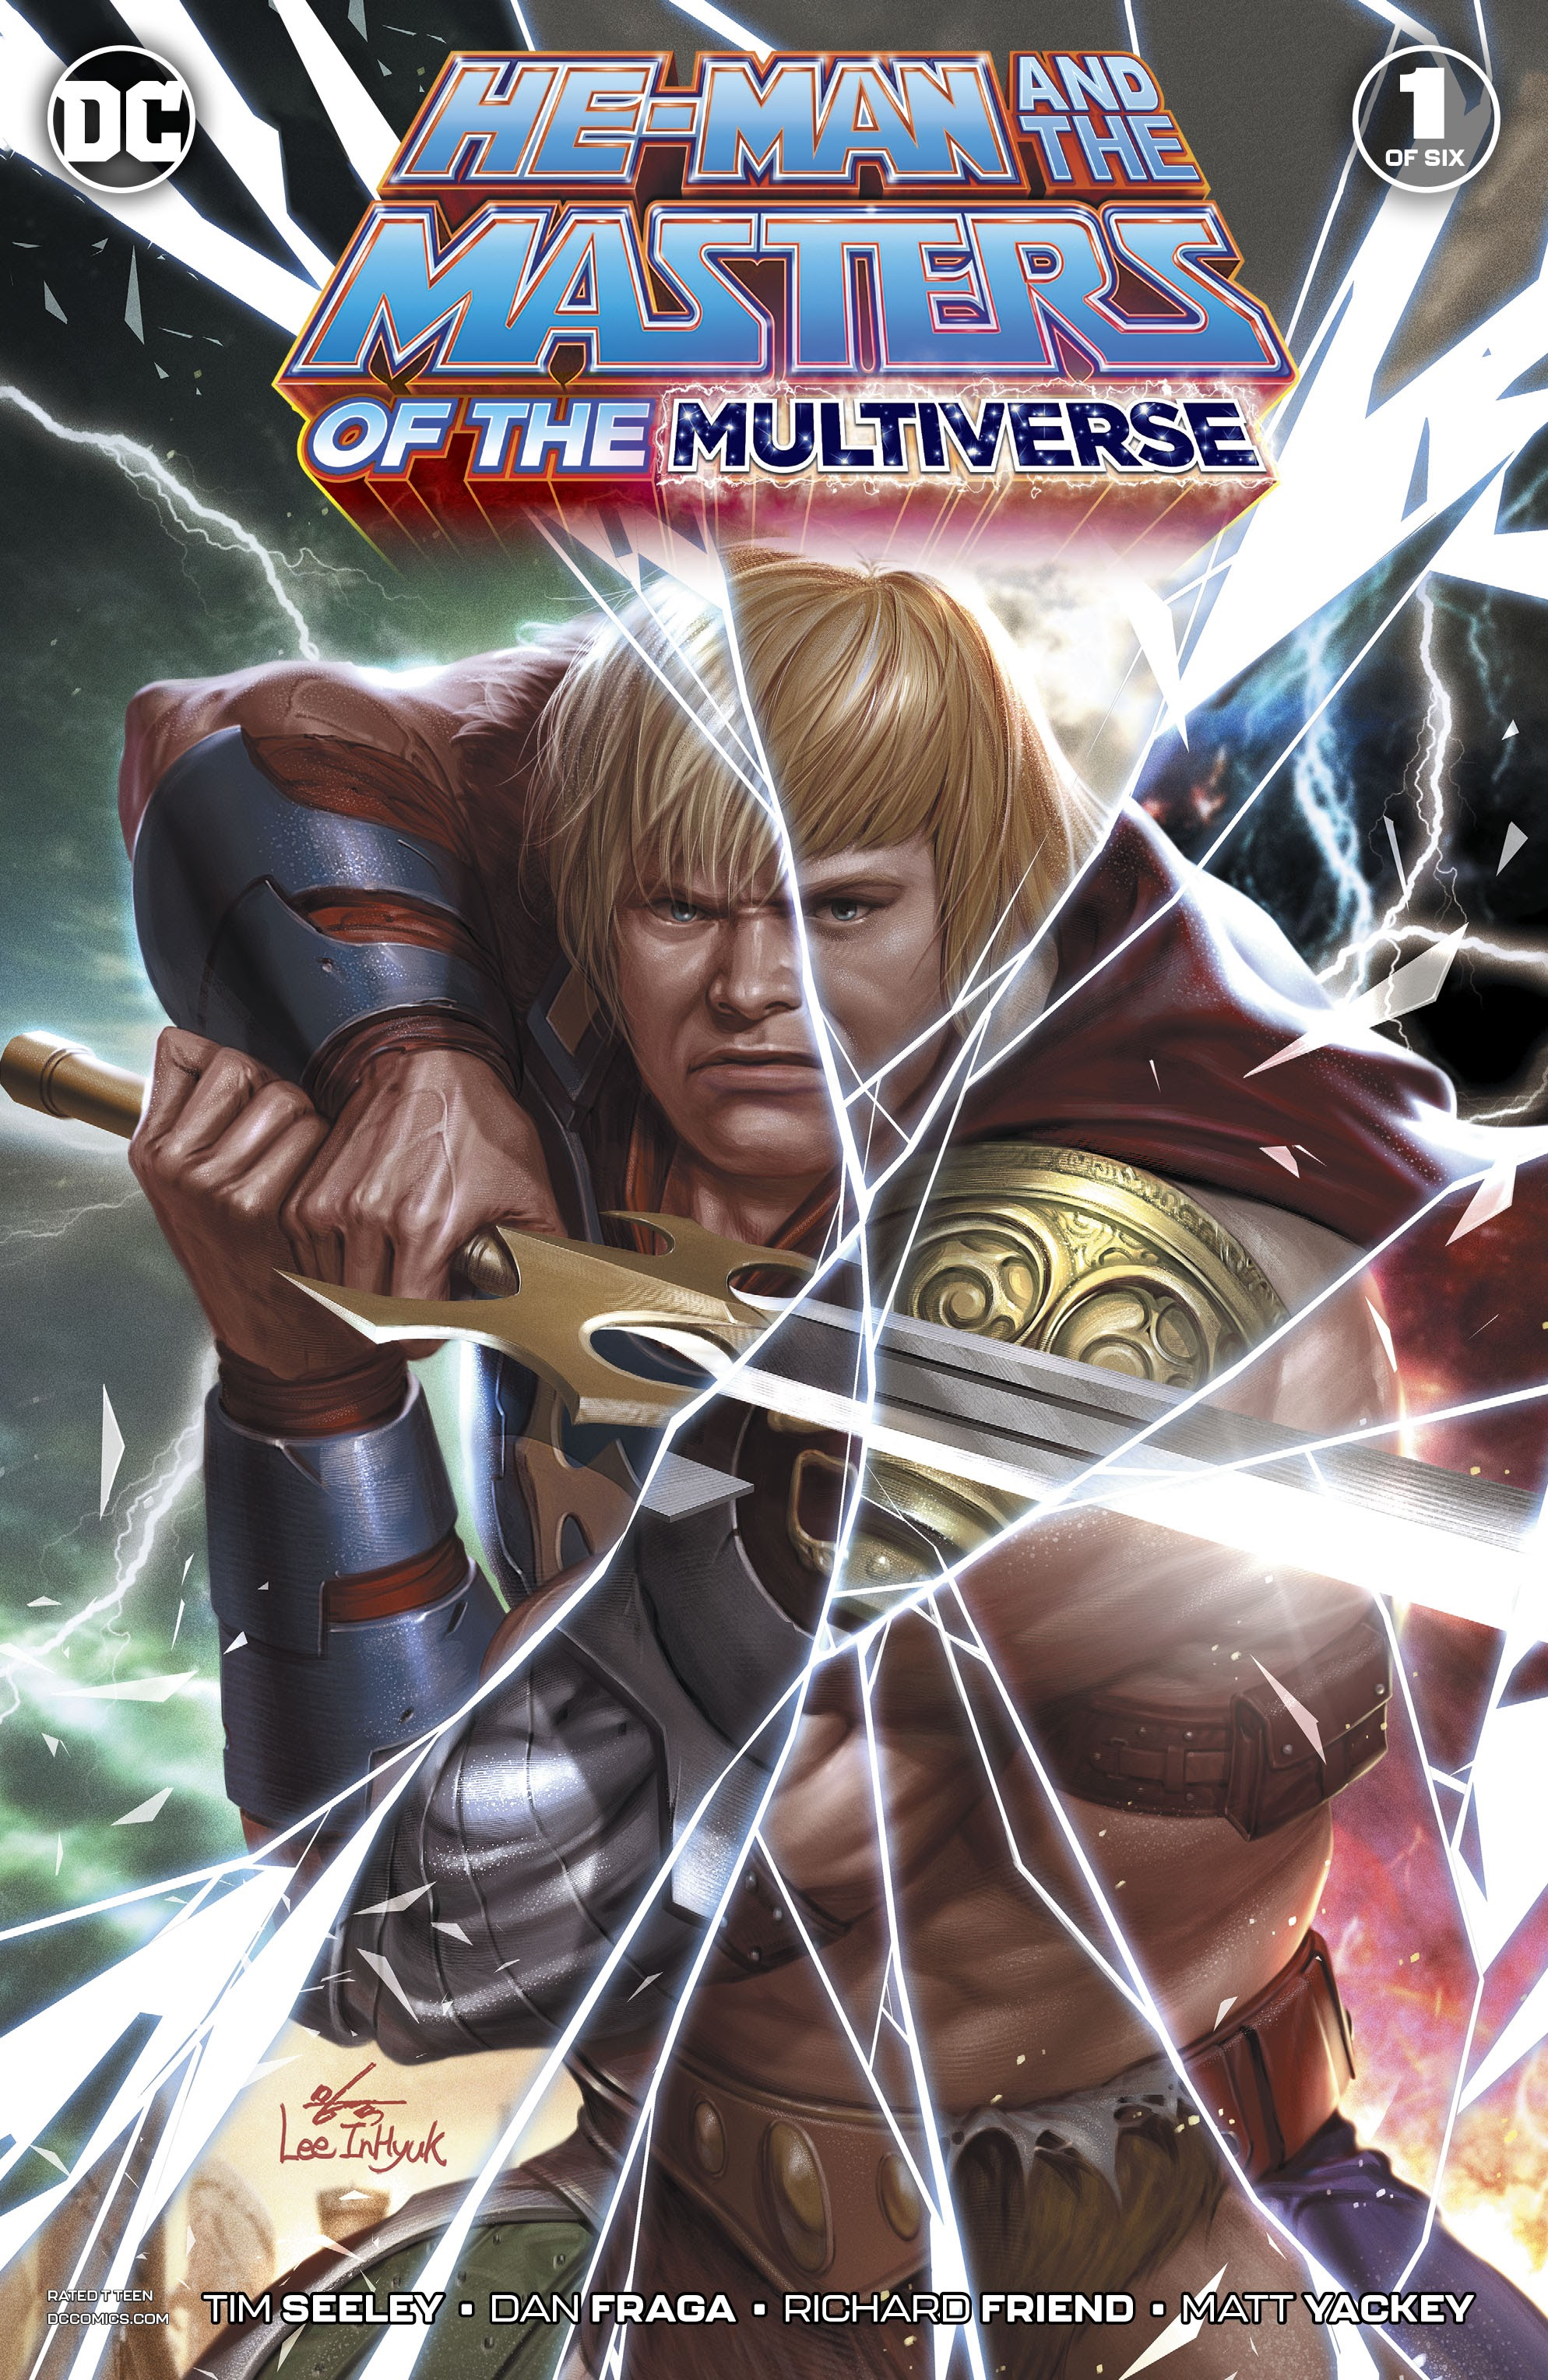 He-Man and the Masters of the Multiverse Vol 1